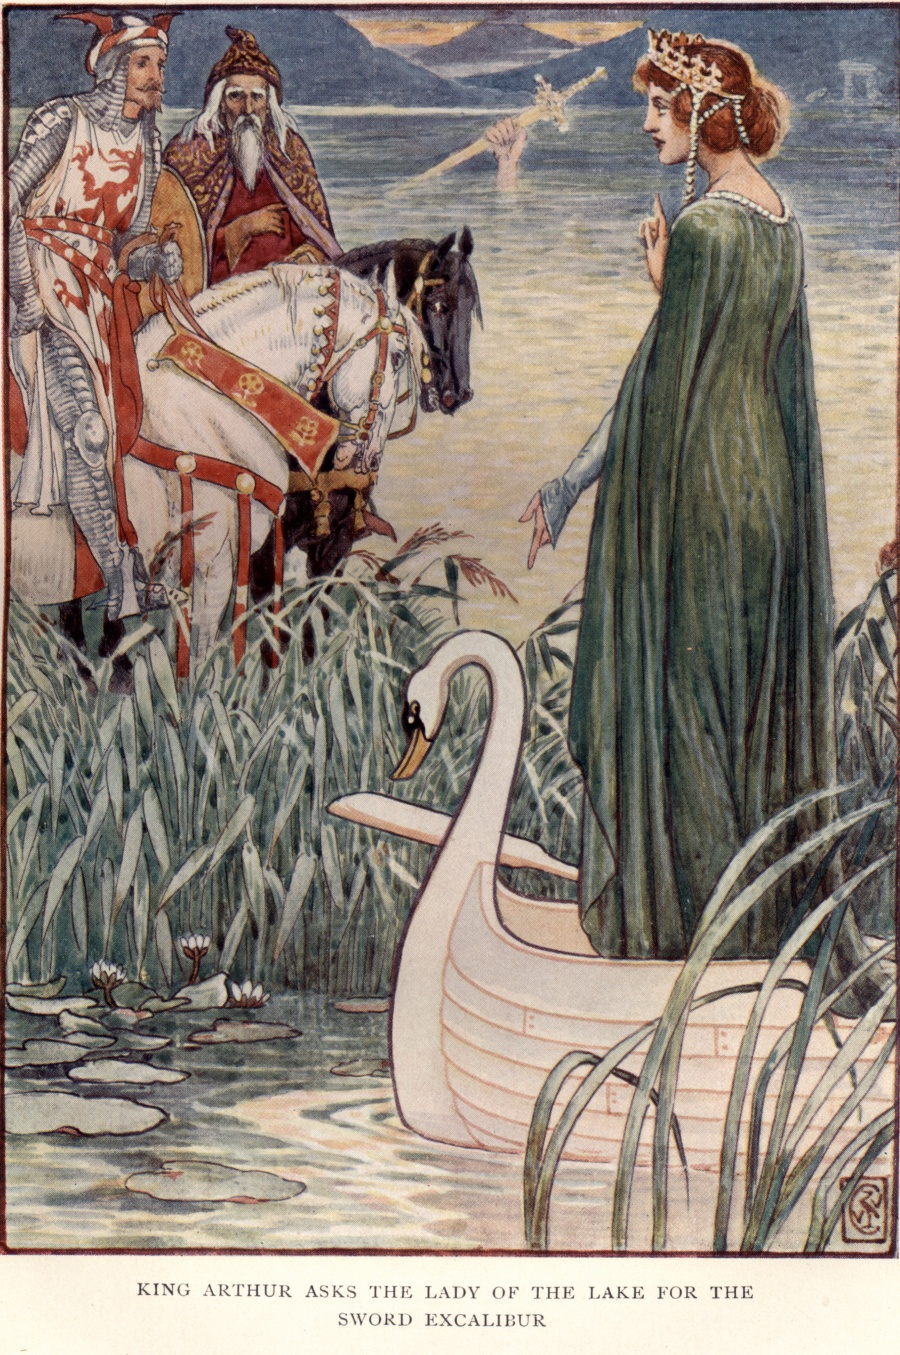 CRANE_King_Arthur_asks_the_lady_of_the_lake_for_the_sword_Excalibur.jpg